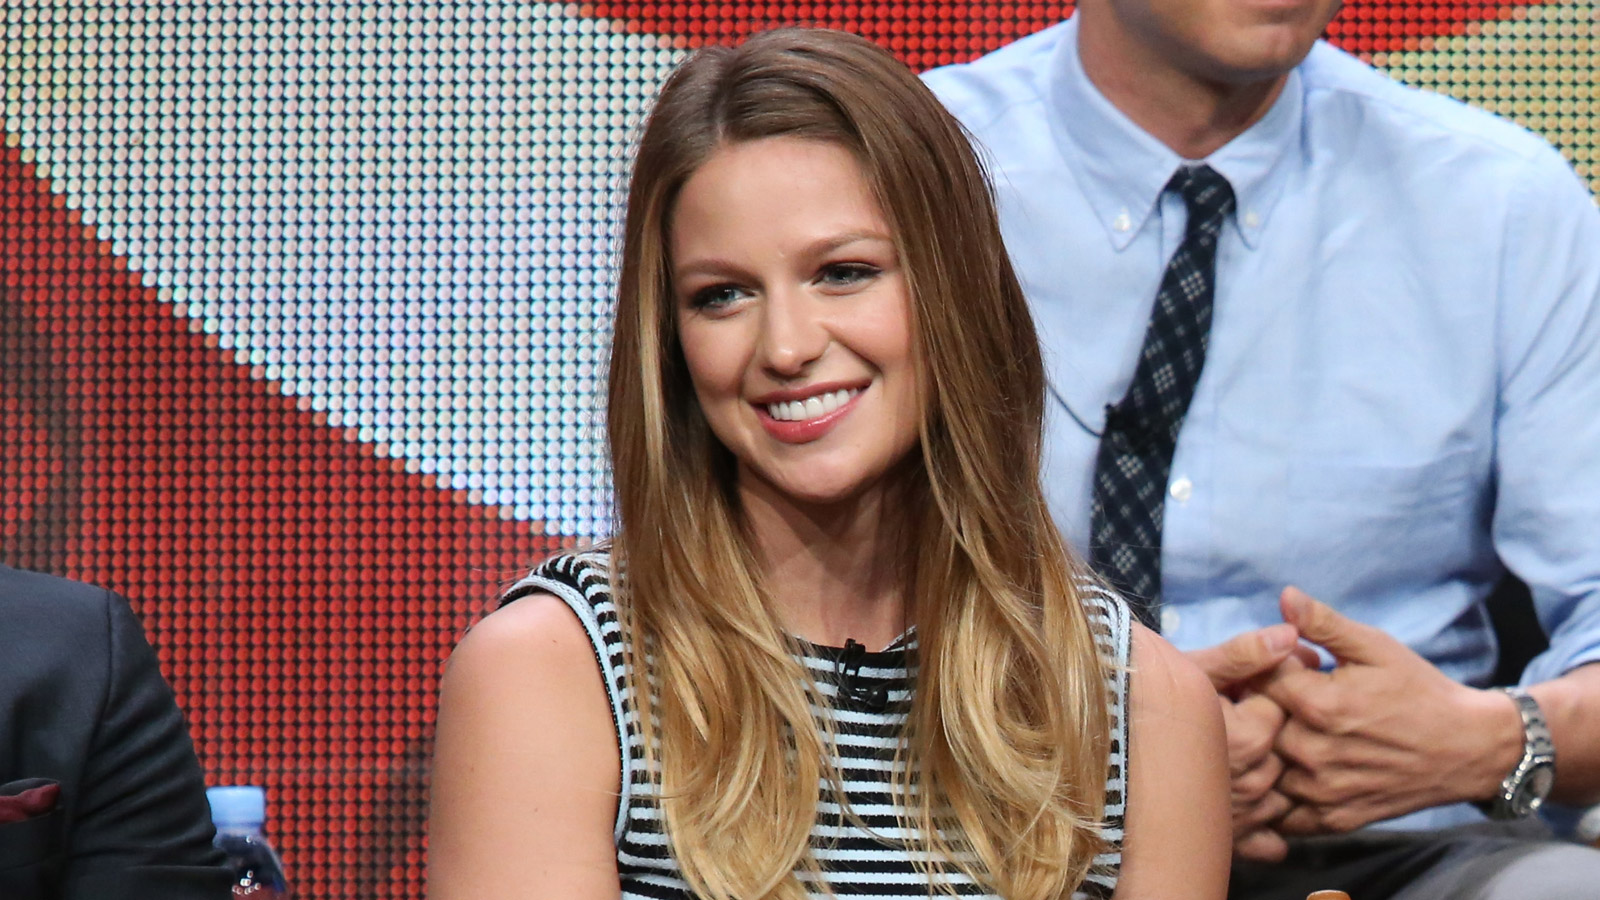 Melissa Benoist onstage during the 'Supergirl' panel discussion at the CBS portion of the 2015 Summer TCA Tour at The Beverly Hilton Hotel on August 10, 2015. (credit: Frederick M. Brown/Getty Images)